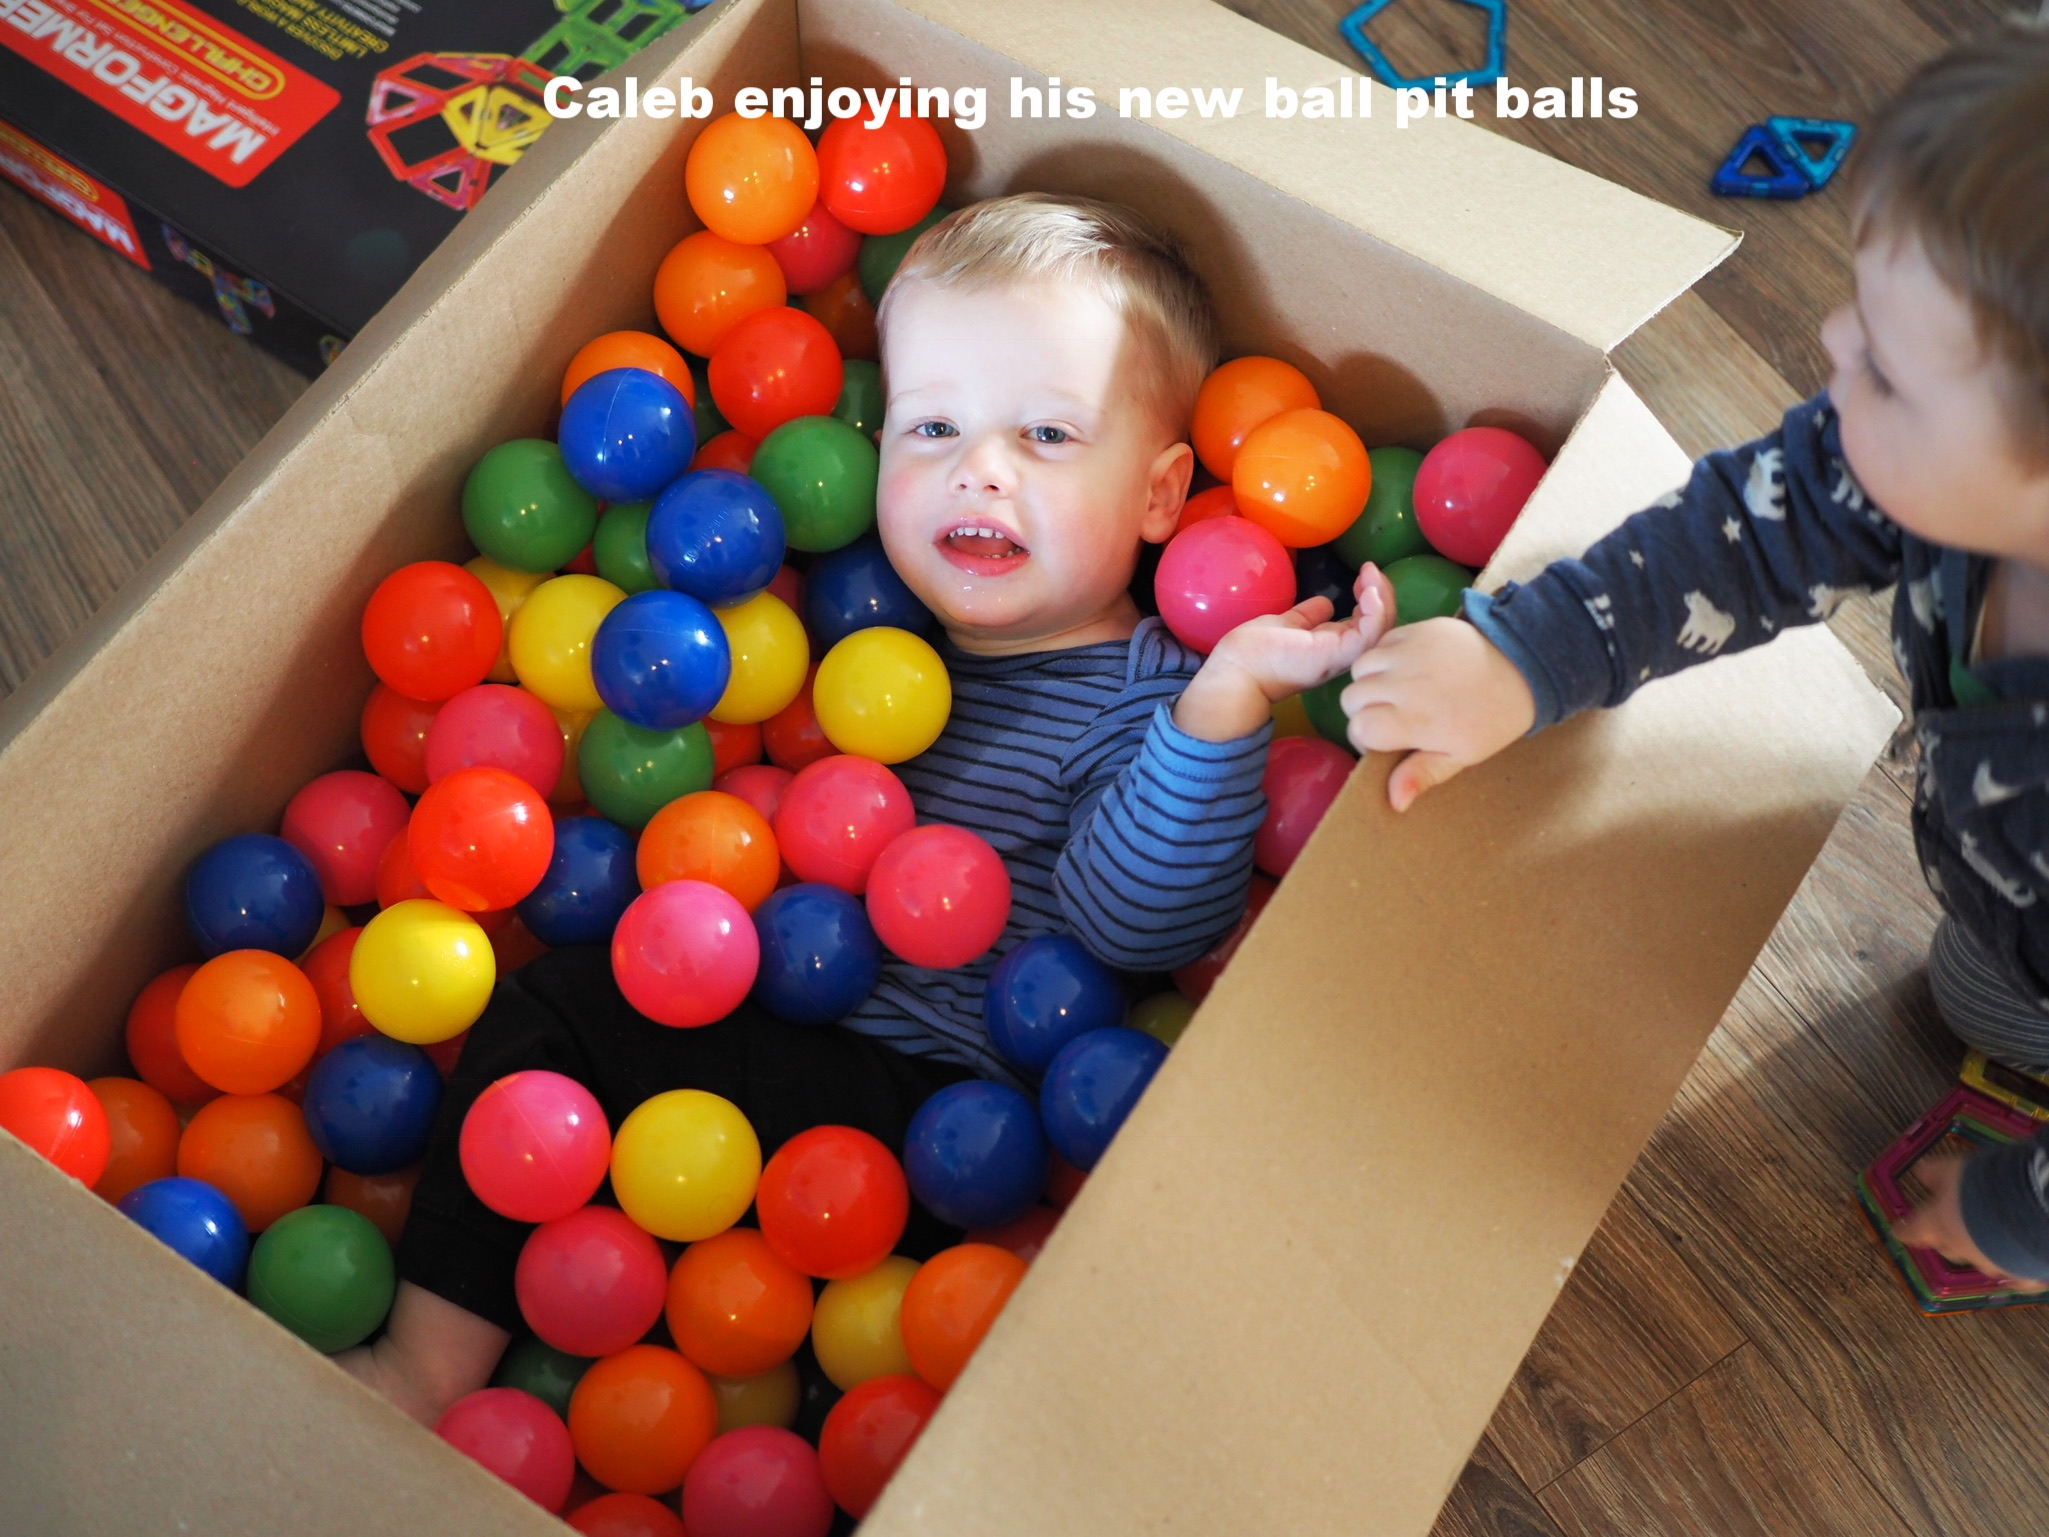 Caleb enjoying his new ball pit balls